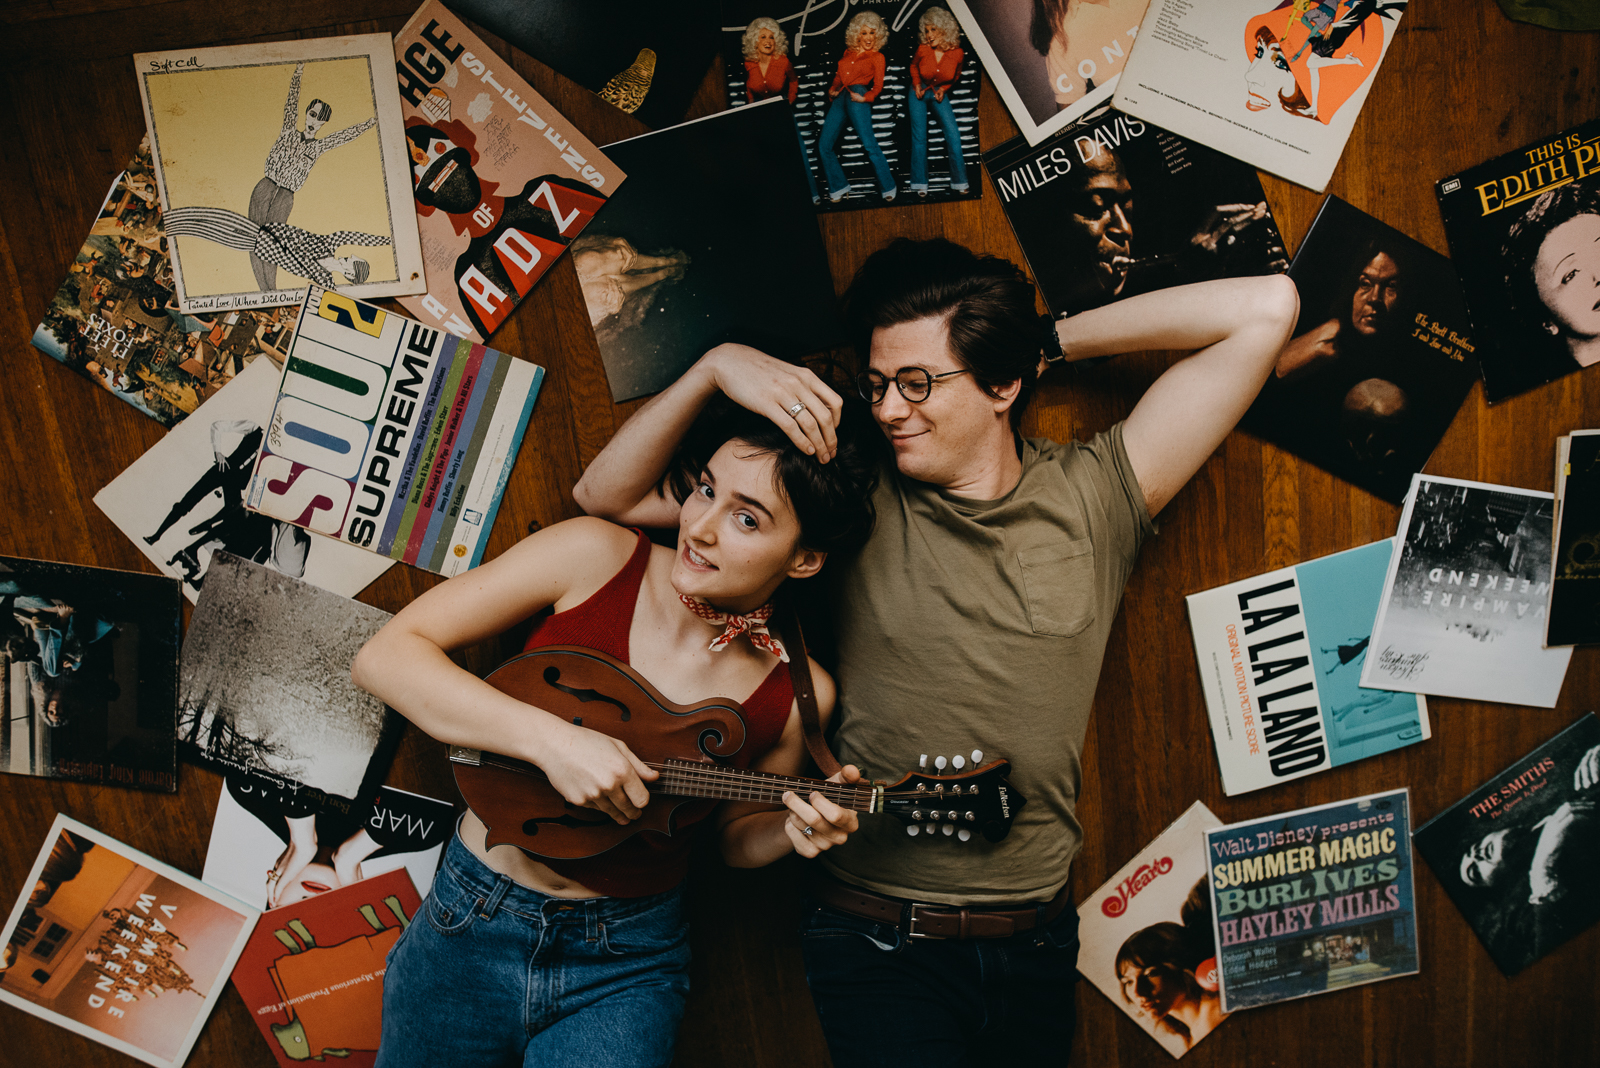 man and woman with ukulele laying on floor covered in albums